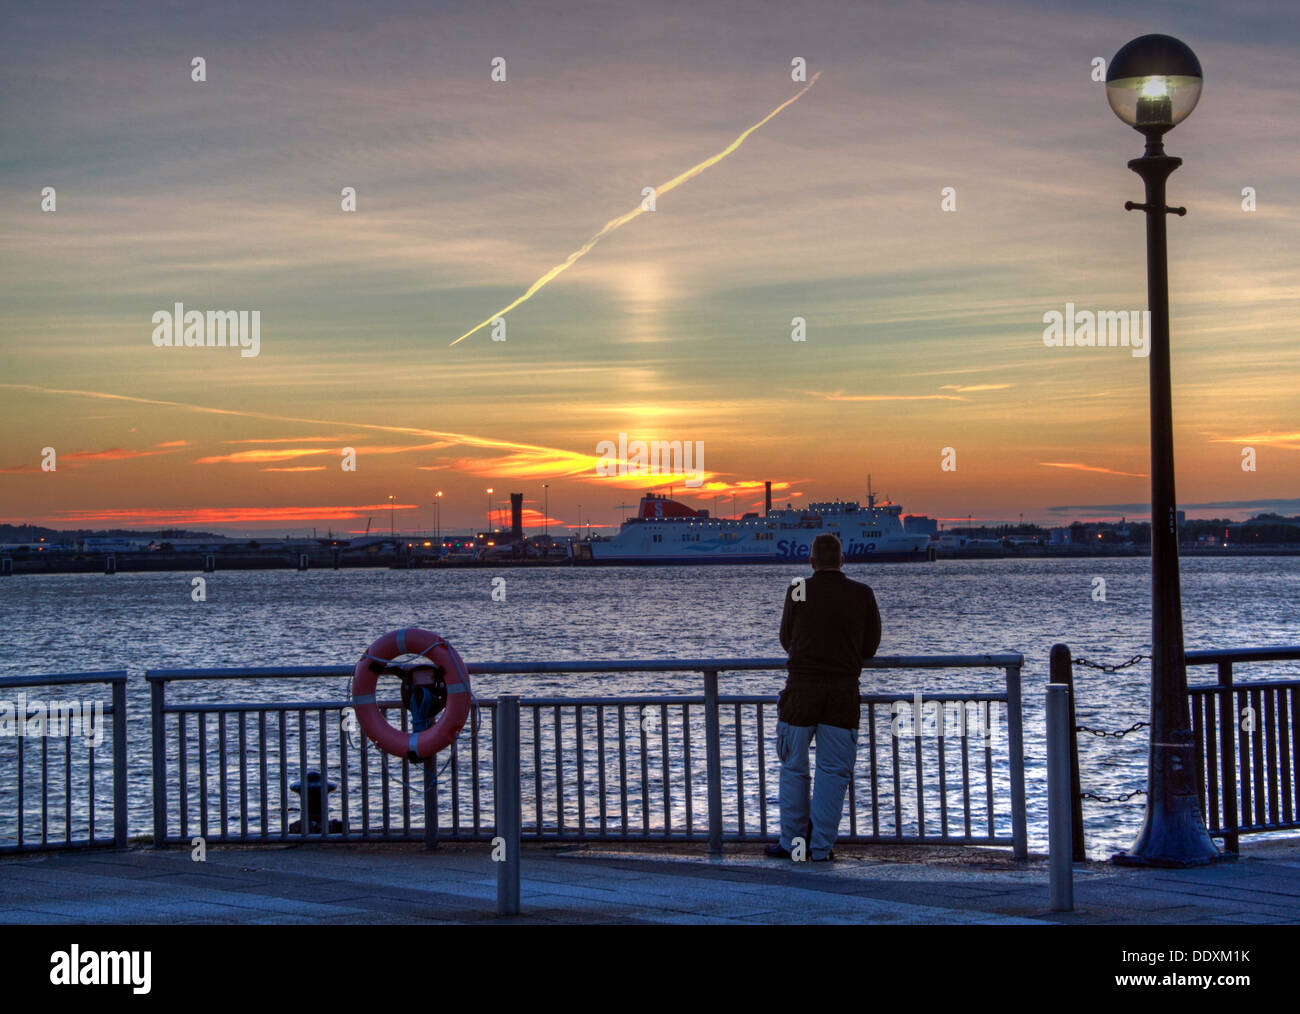 Man looking over to Birkenhead-Belfast Stena line ferry, from Albert Dock at Nighttime liverpool Merseyside England - Stock Image